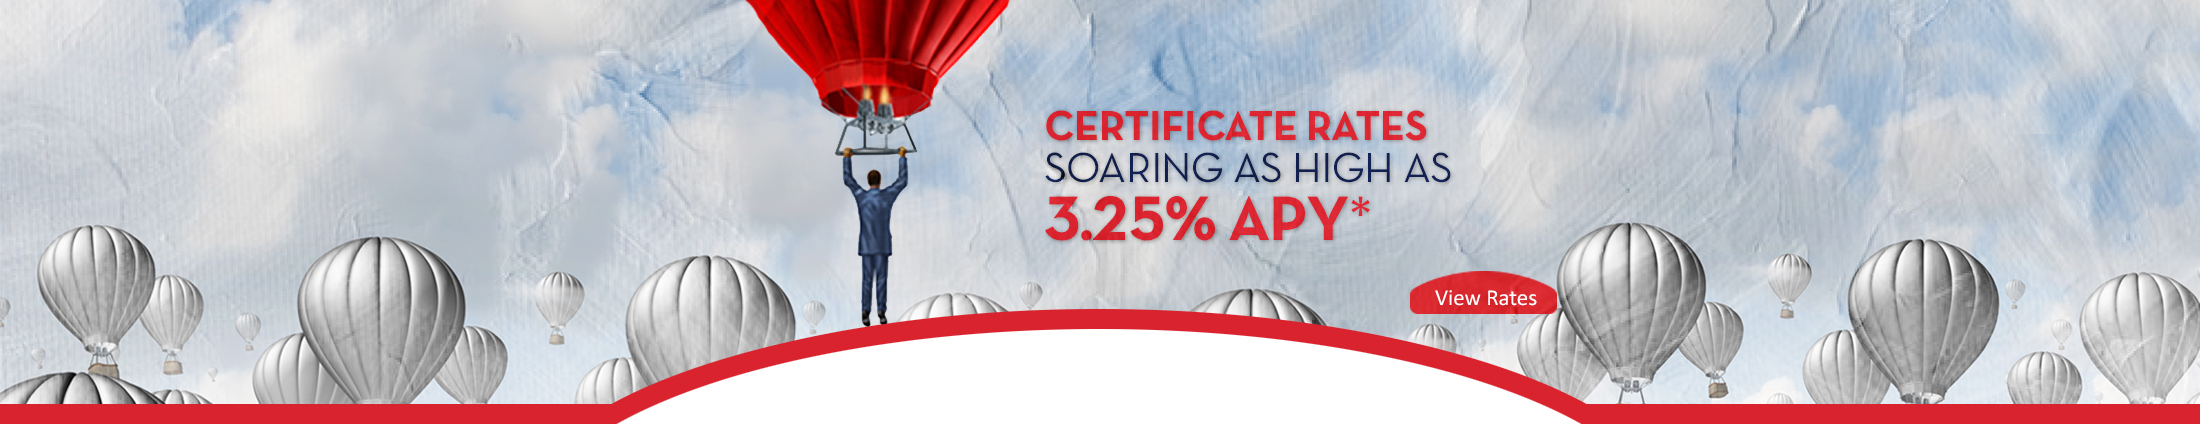 Certificate Rates as high as 3.05% APY